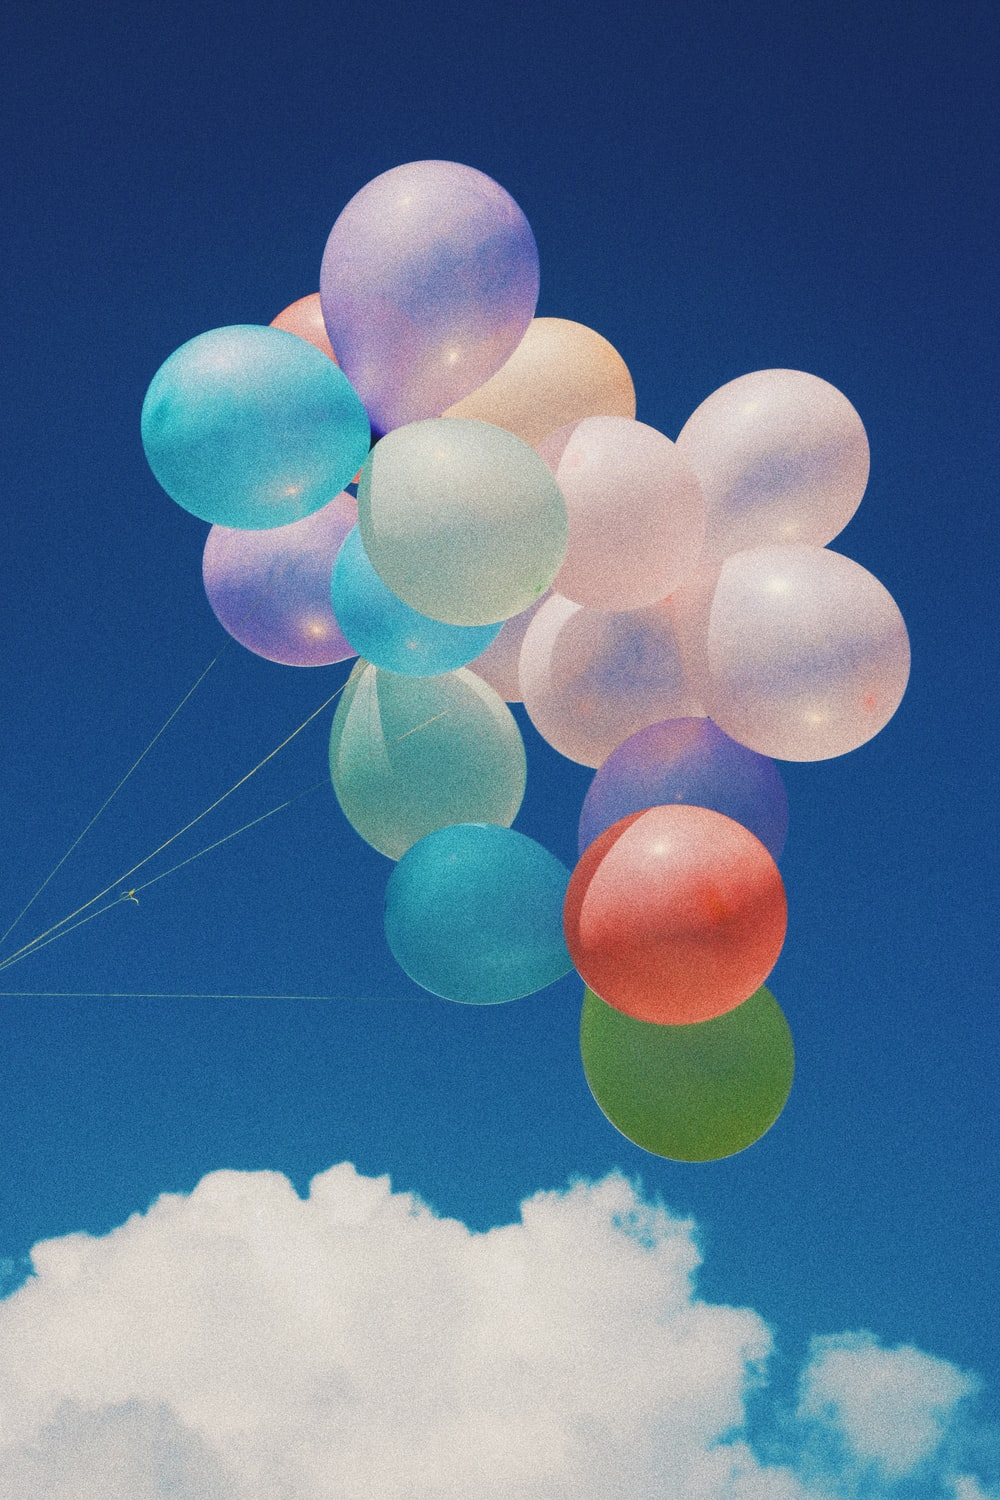 Best 20+ Balloon Images | Download Free Pictures on Unsplash